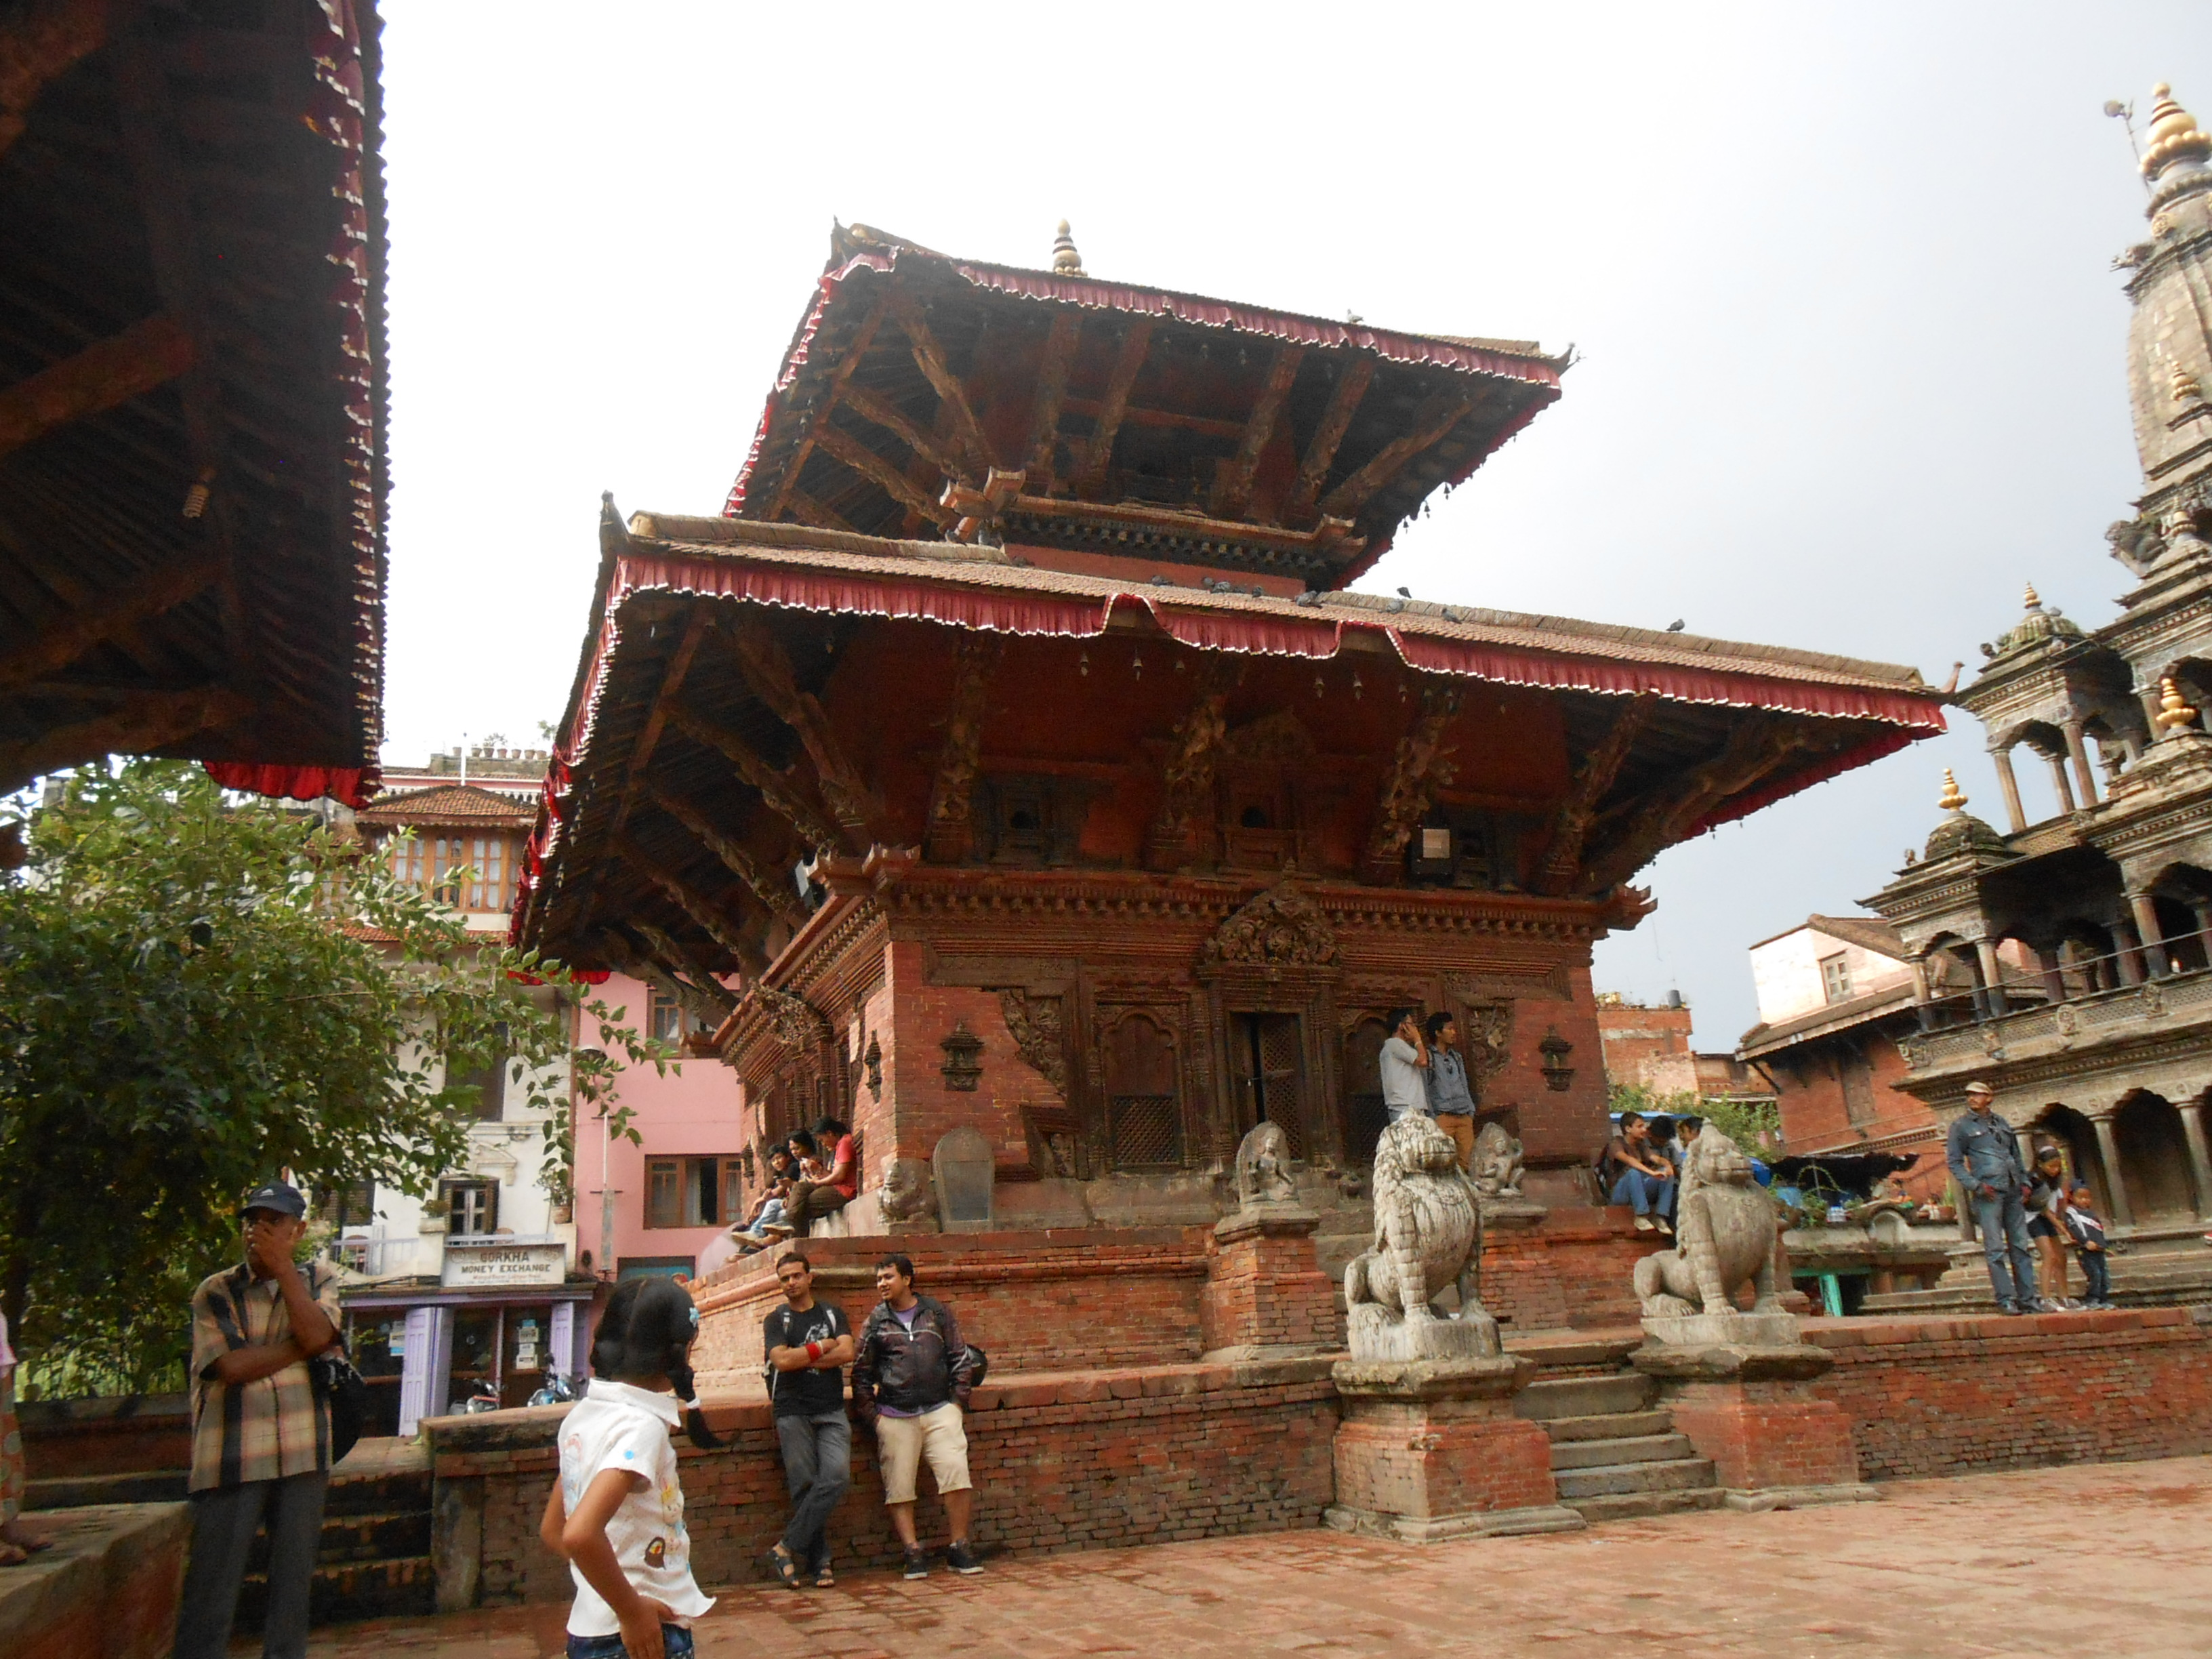 Char Narayan Temple in Nepal Restored After 2015's Earthquake